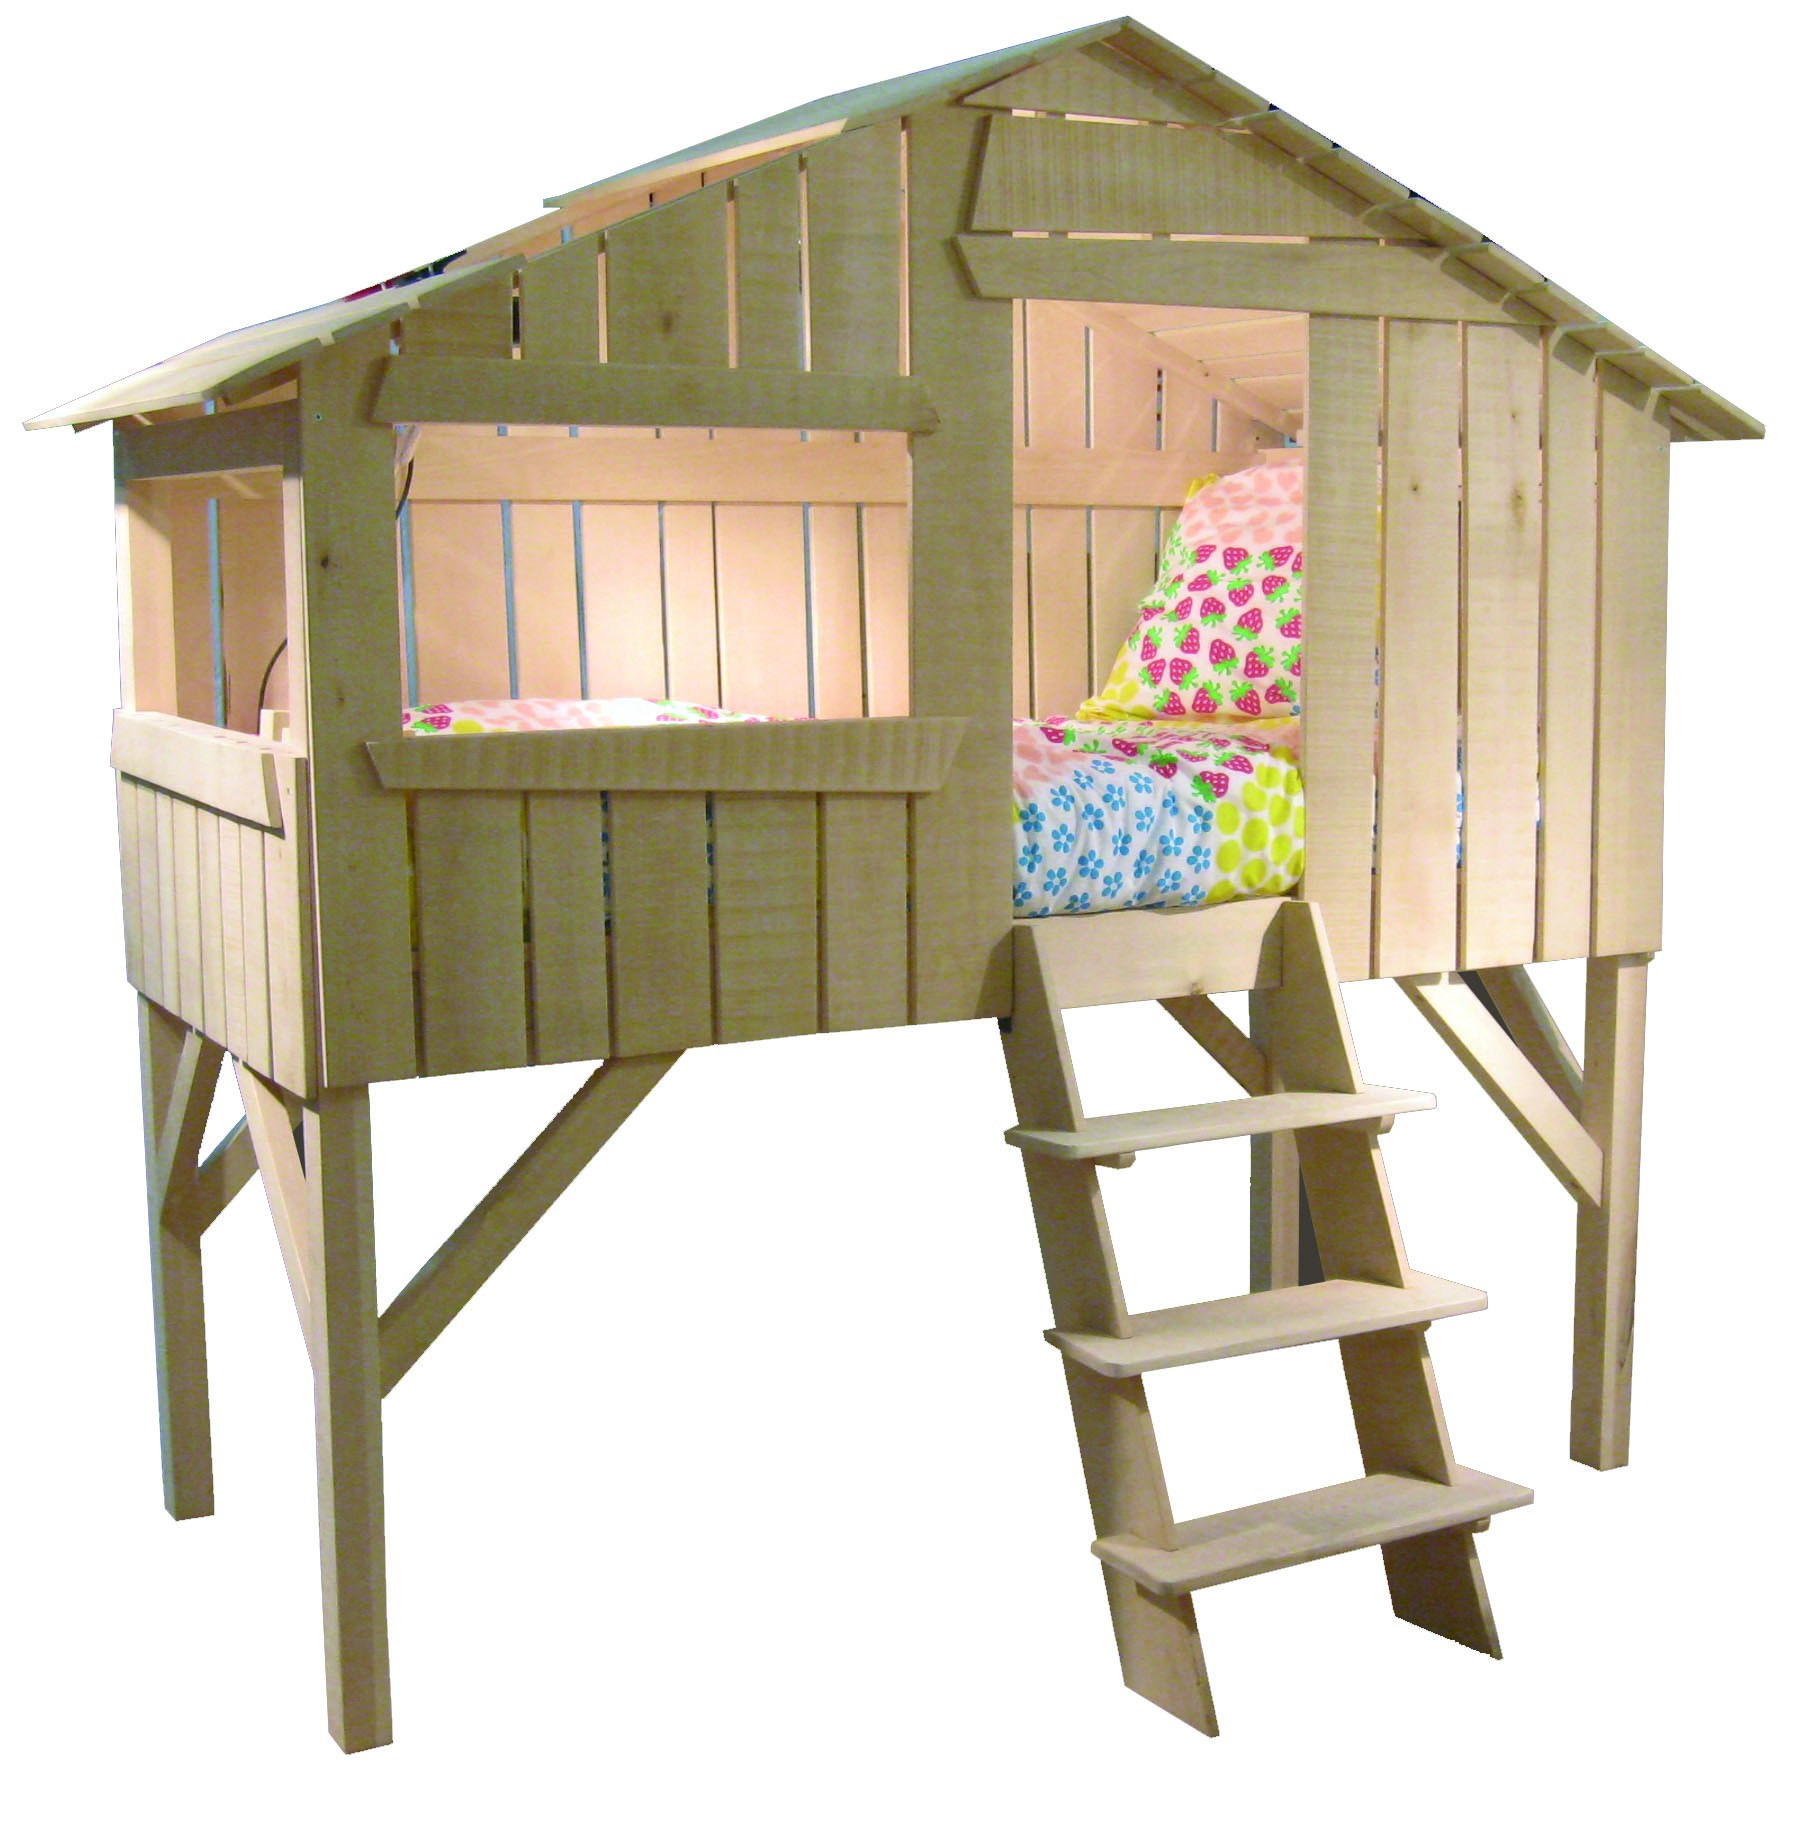 Tuto Lit Cabane Lit Cabane Enfant Simple Couchage Vernis Naturel